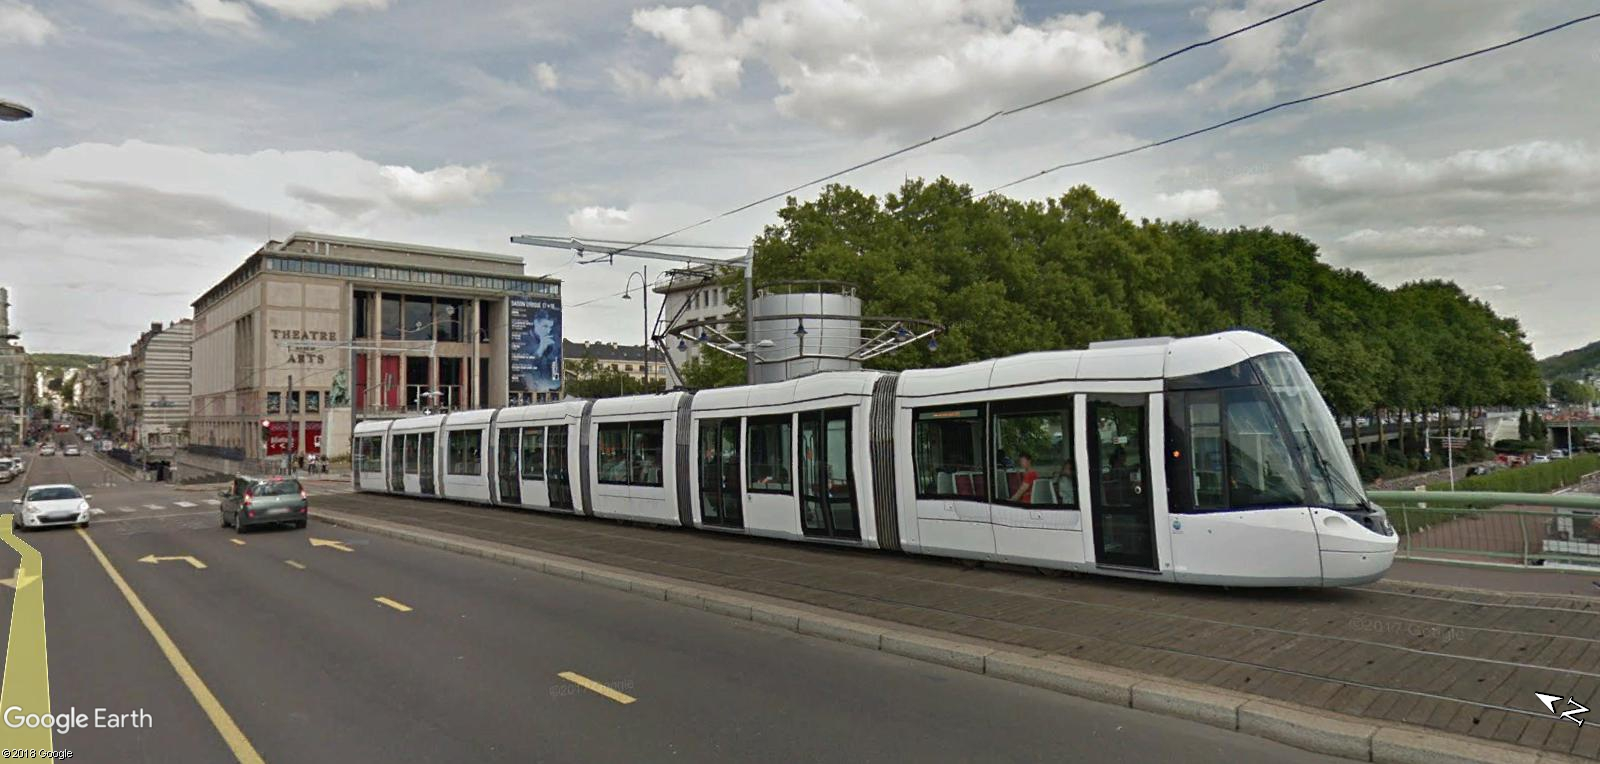 STREET VIEW : les tramways en action - Page 4 Tram11